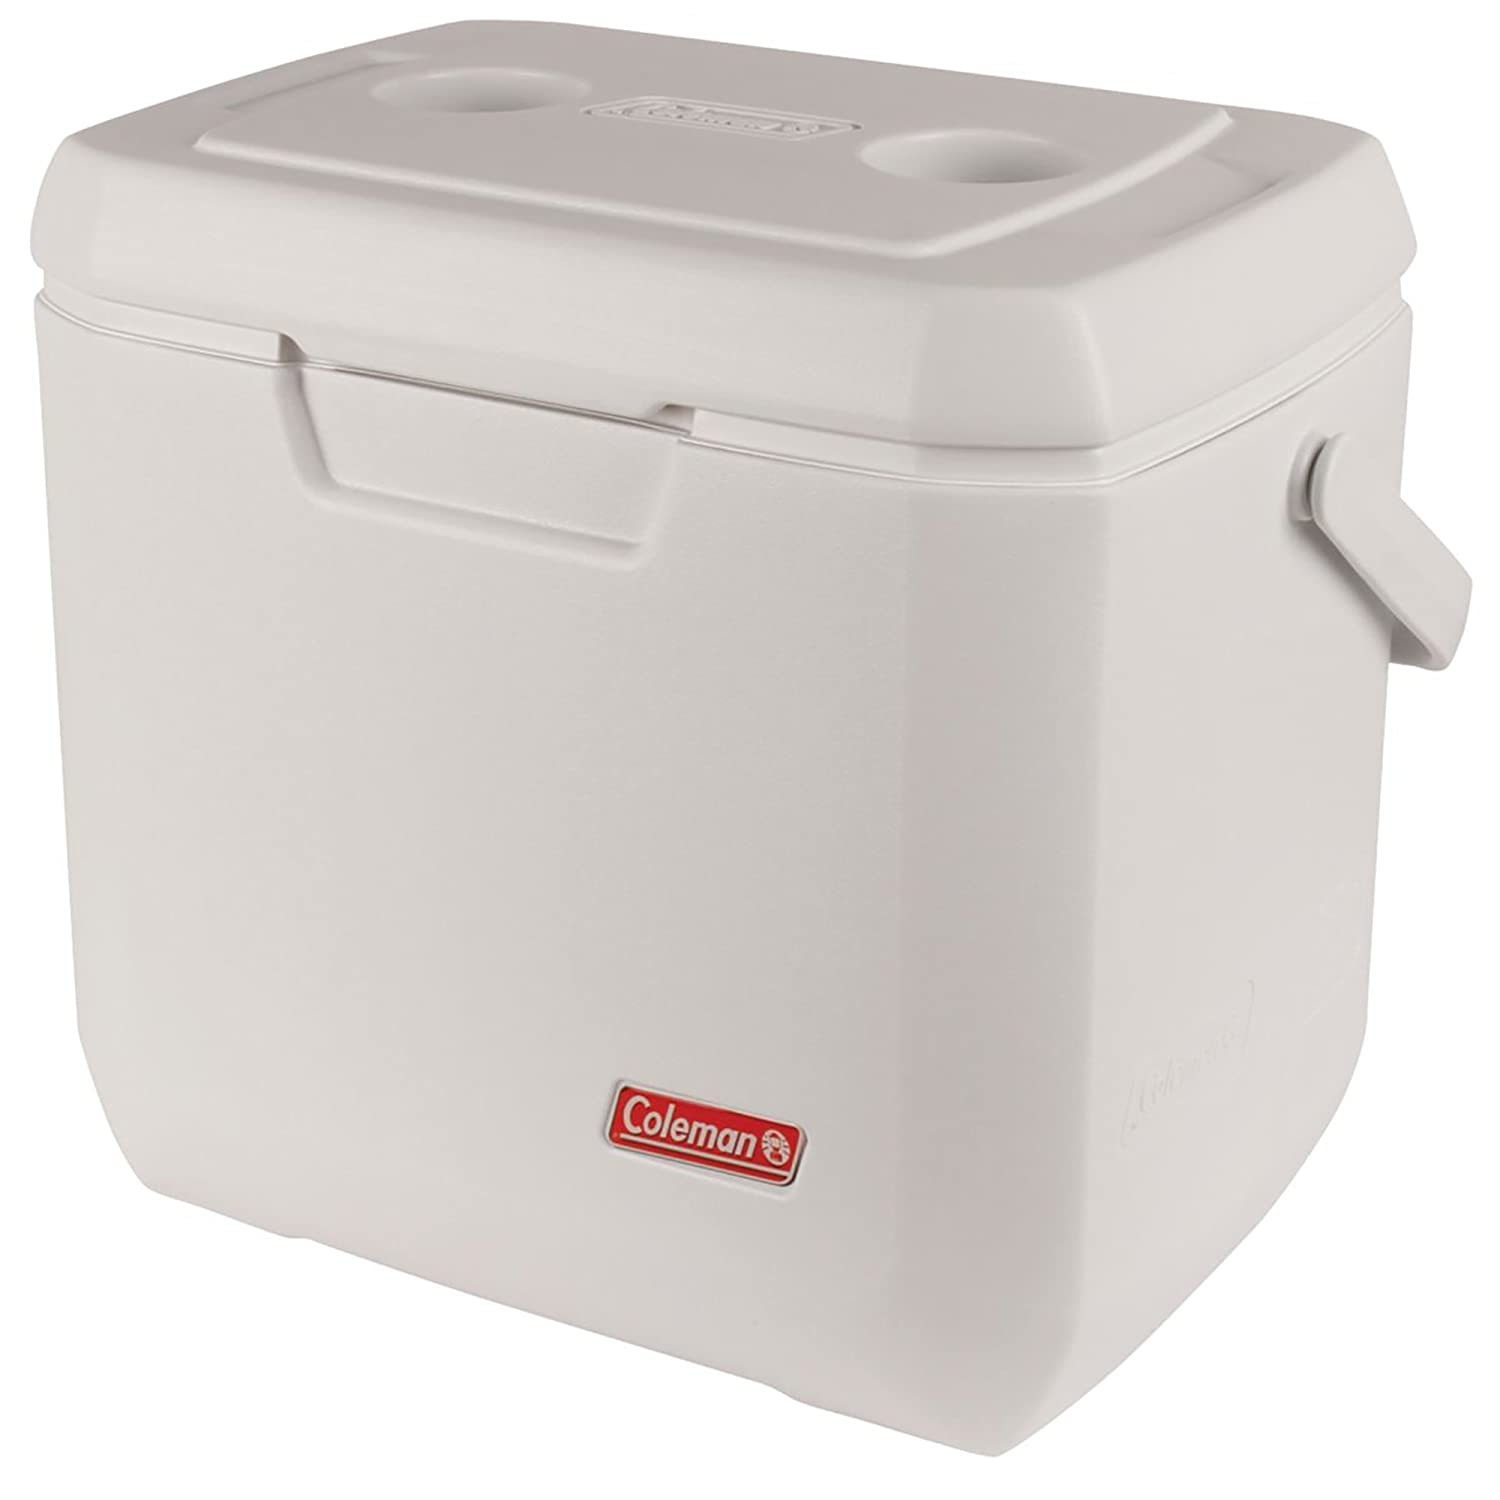 Coleman Cool Box Xtreme Marine 28QT, small high performance cooler box, keeps ice for 3 days, Ice box for drinks, picknicks and Camping, cool box capacity 26 Liters, use with ice packs 3000005138